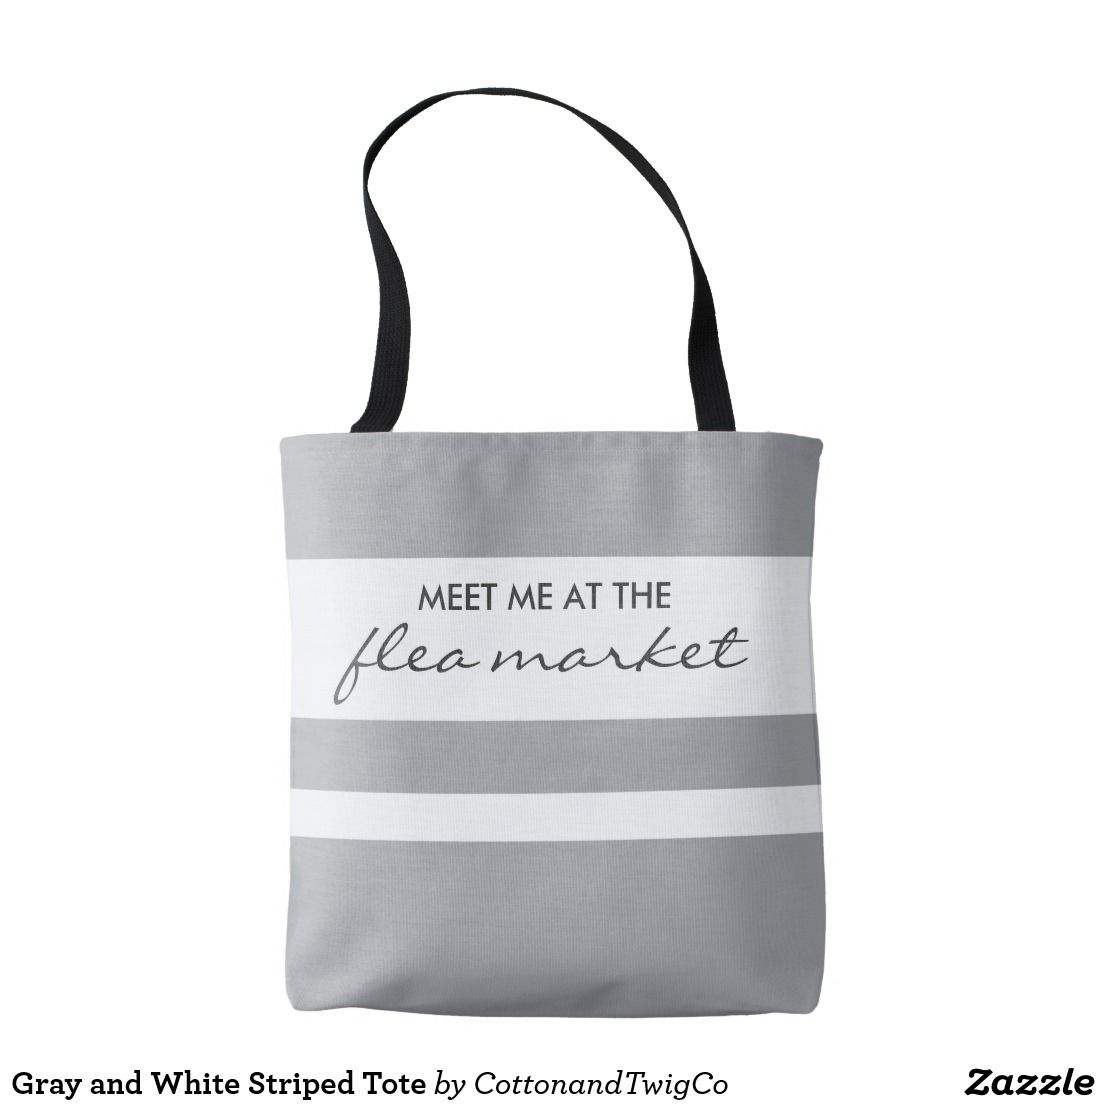 Sentimental Wedding Gift Ideas: Gray And White Striped Tote